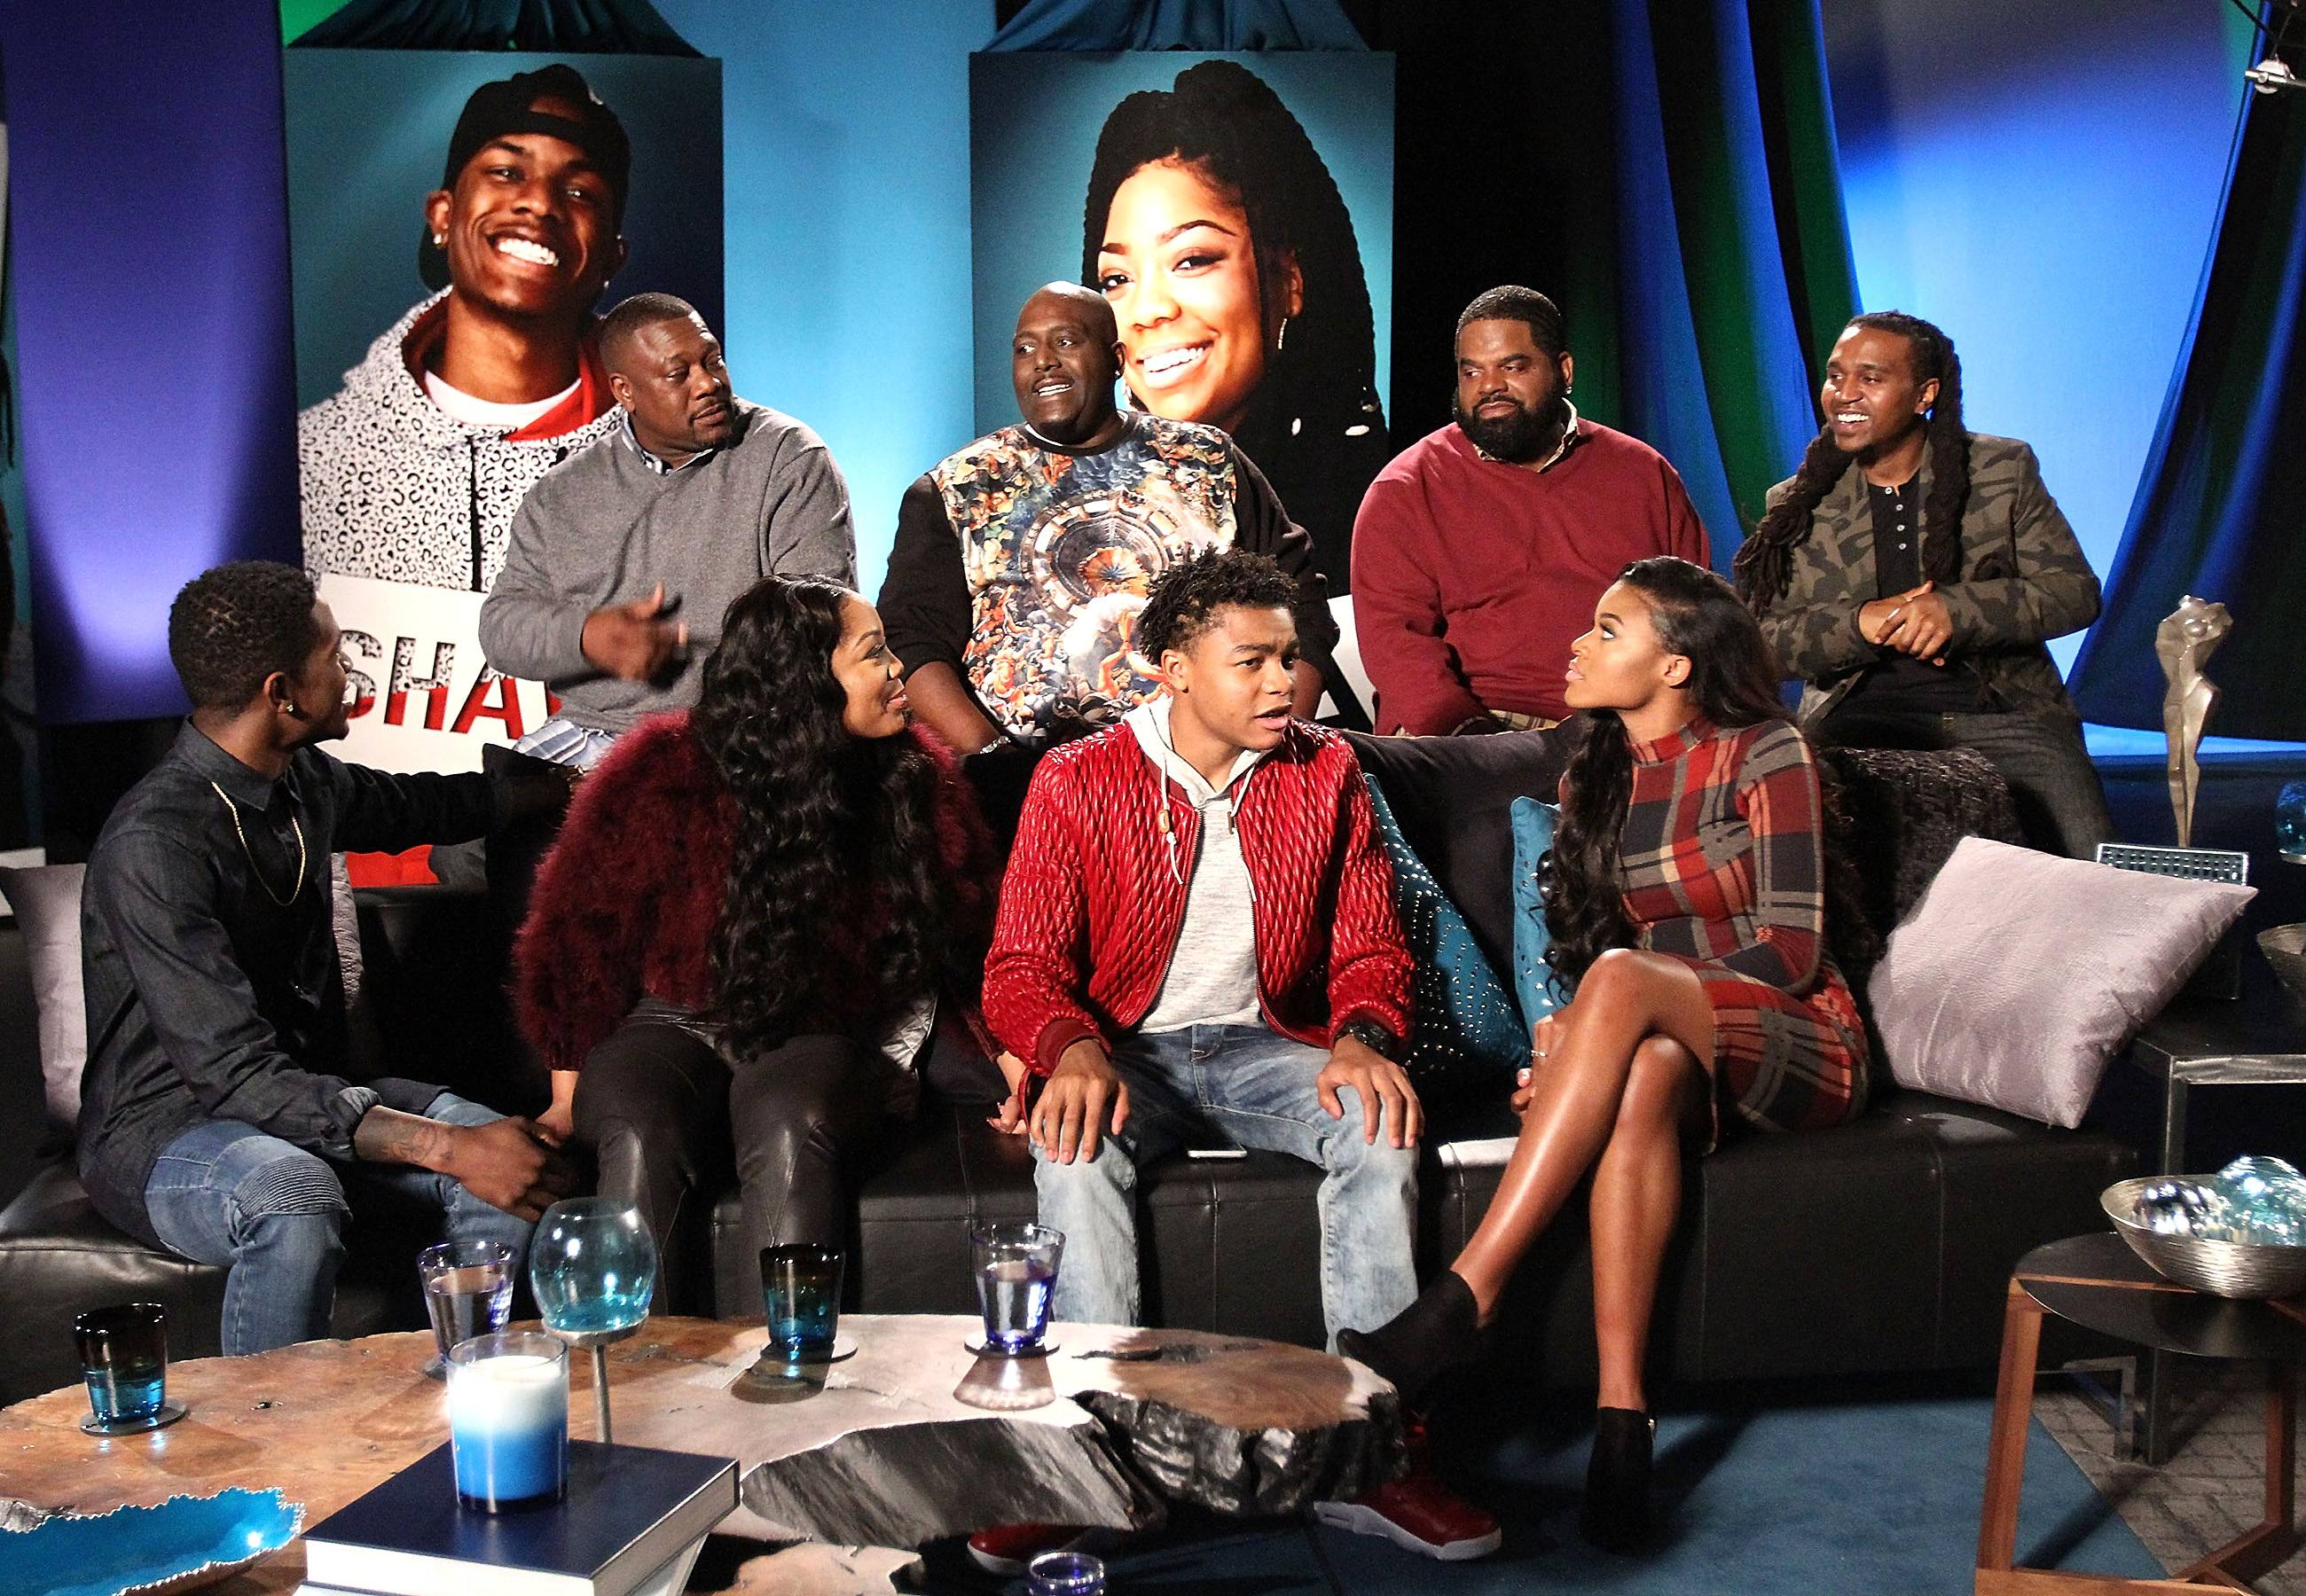 The Clan in Action - The Nellyville village on the set of the reunion.   (Photo: Maury Phillips/WireImage)